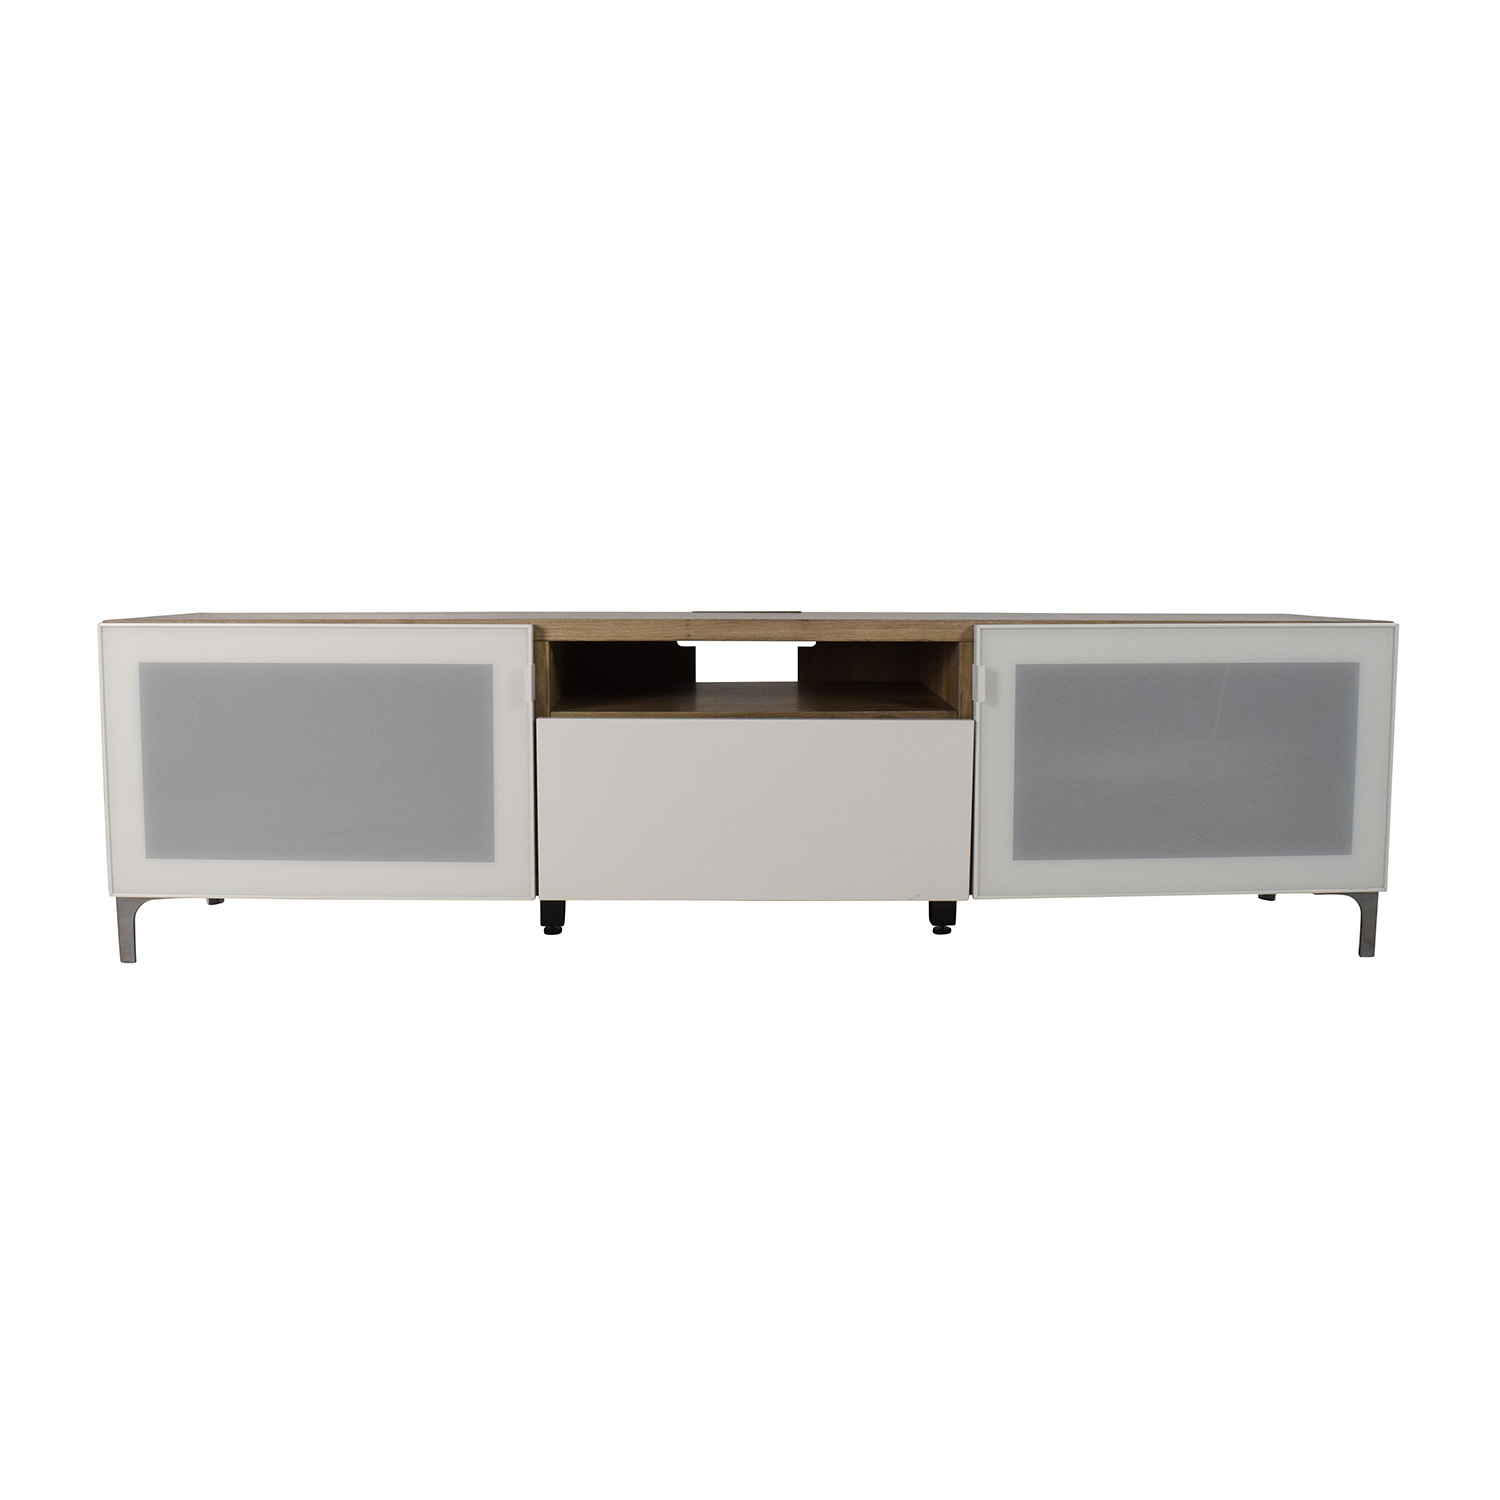 82 off ikea ikea besta media unit storage - Ikea estanteria besta ...